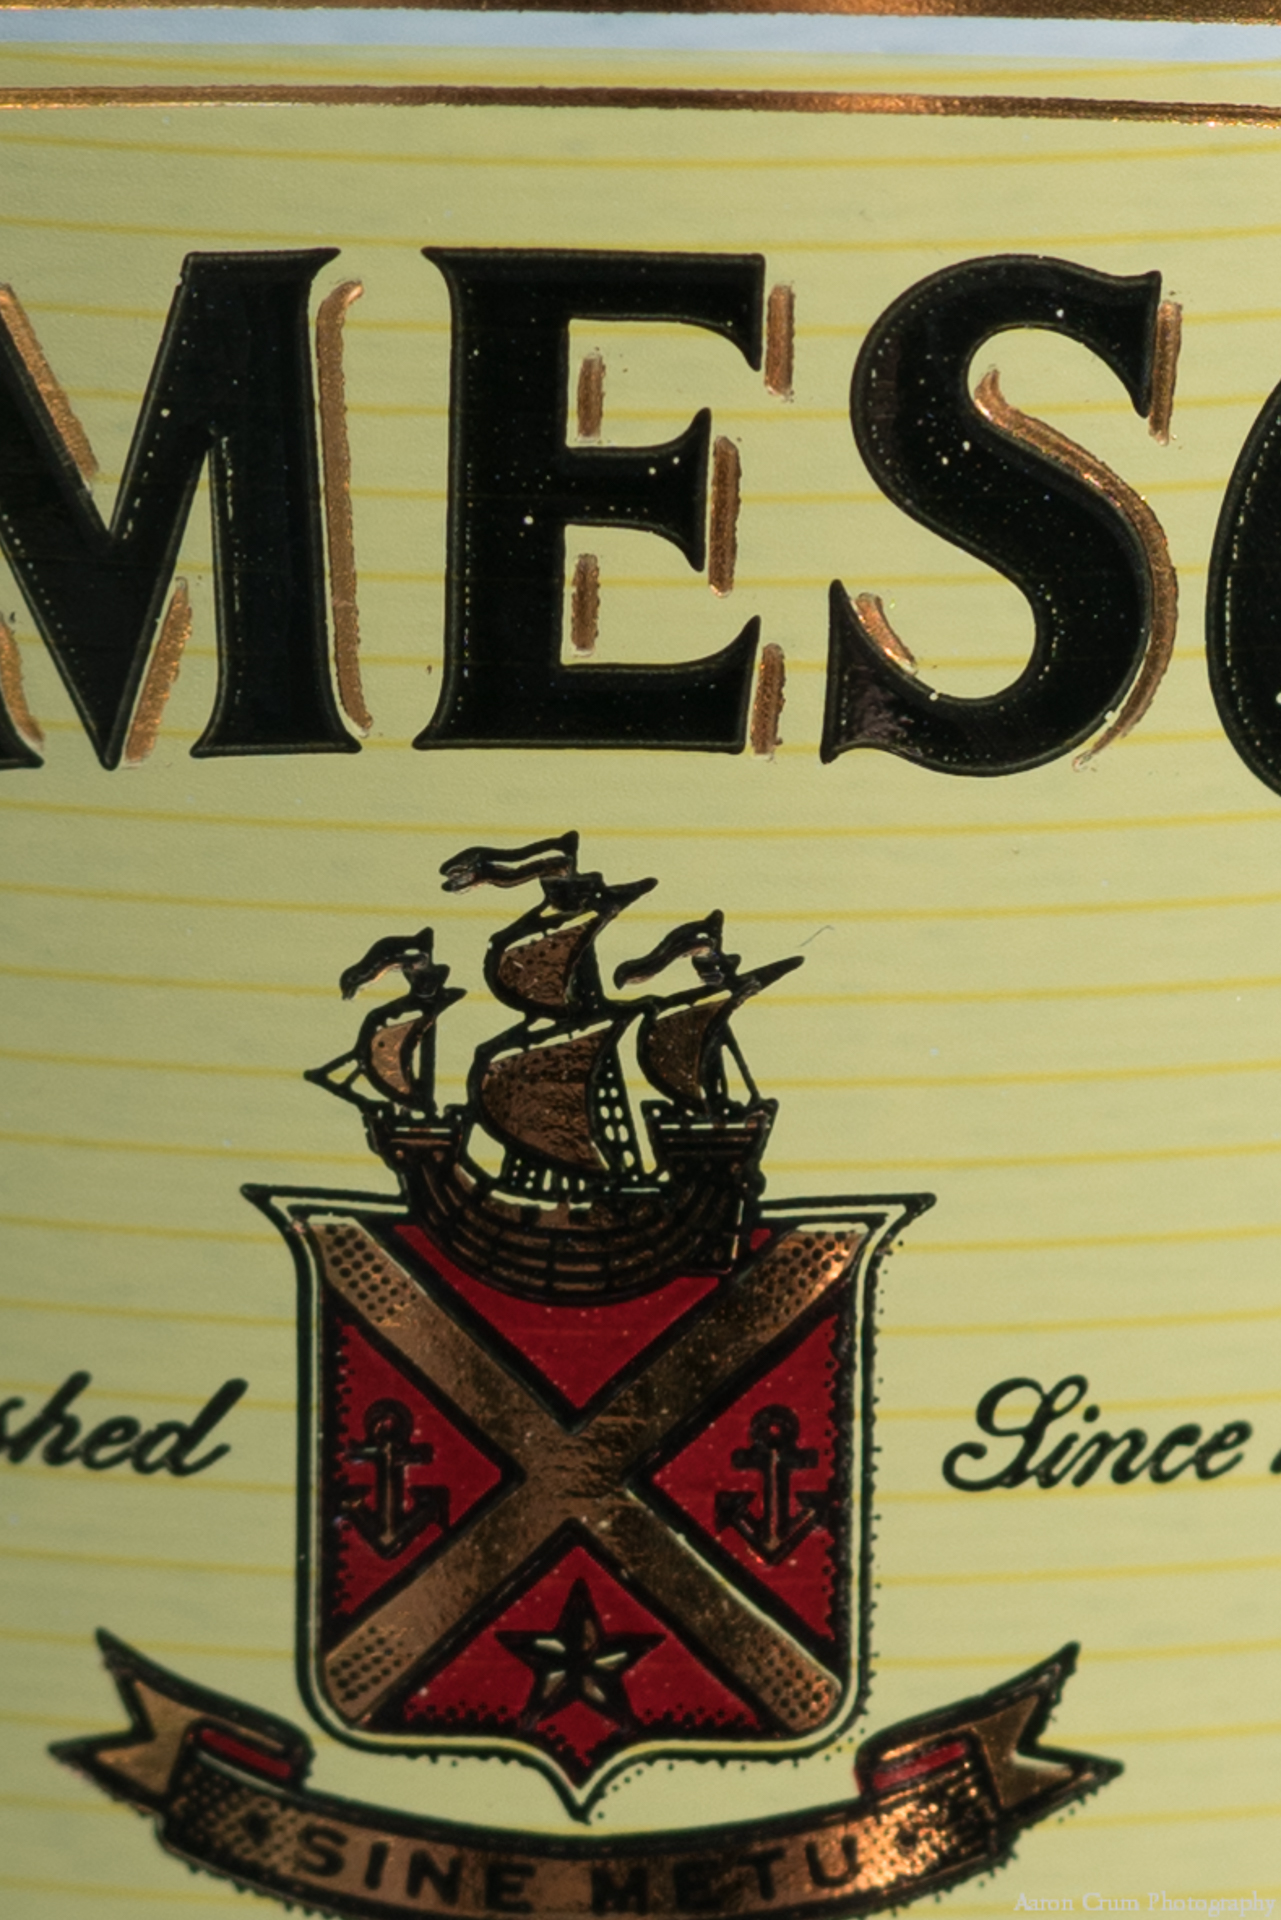 Sony 90mm f/2.8 macro photo of Jameson bottle label